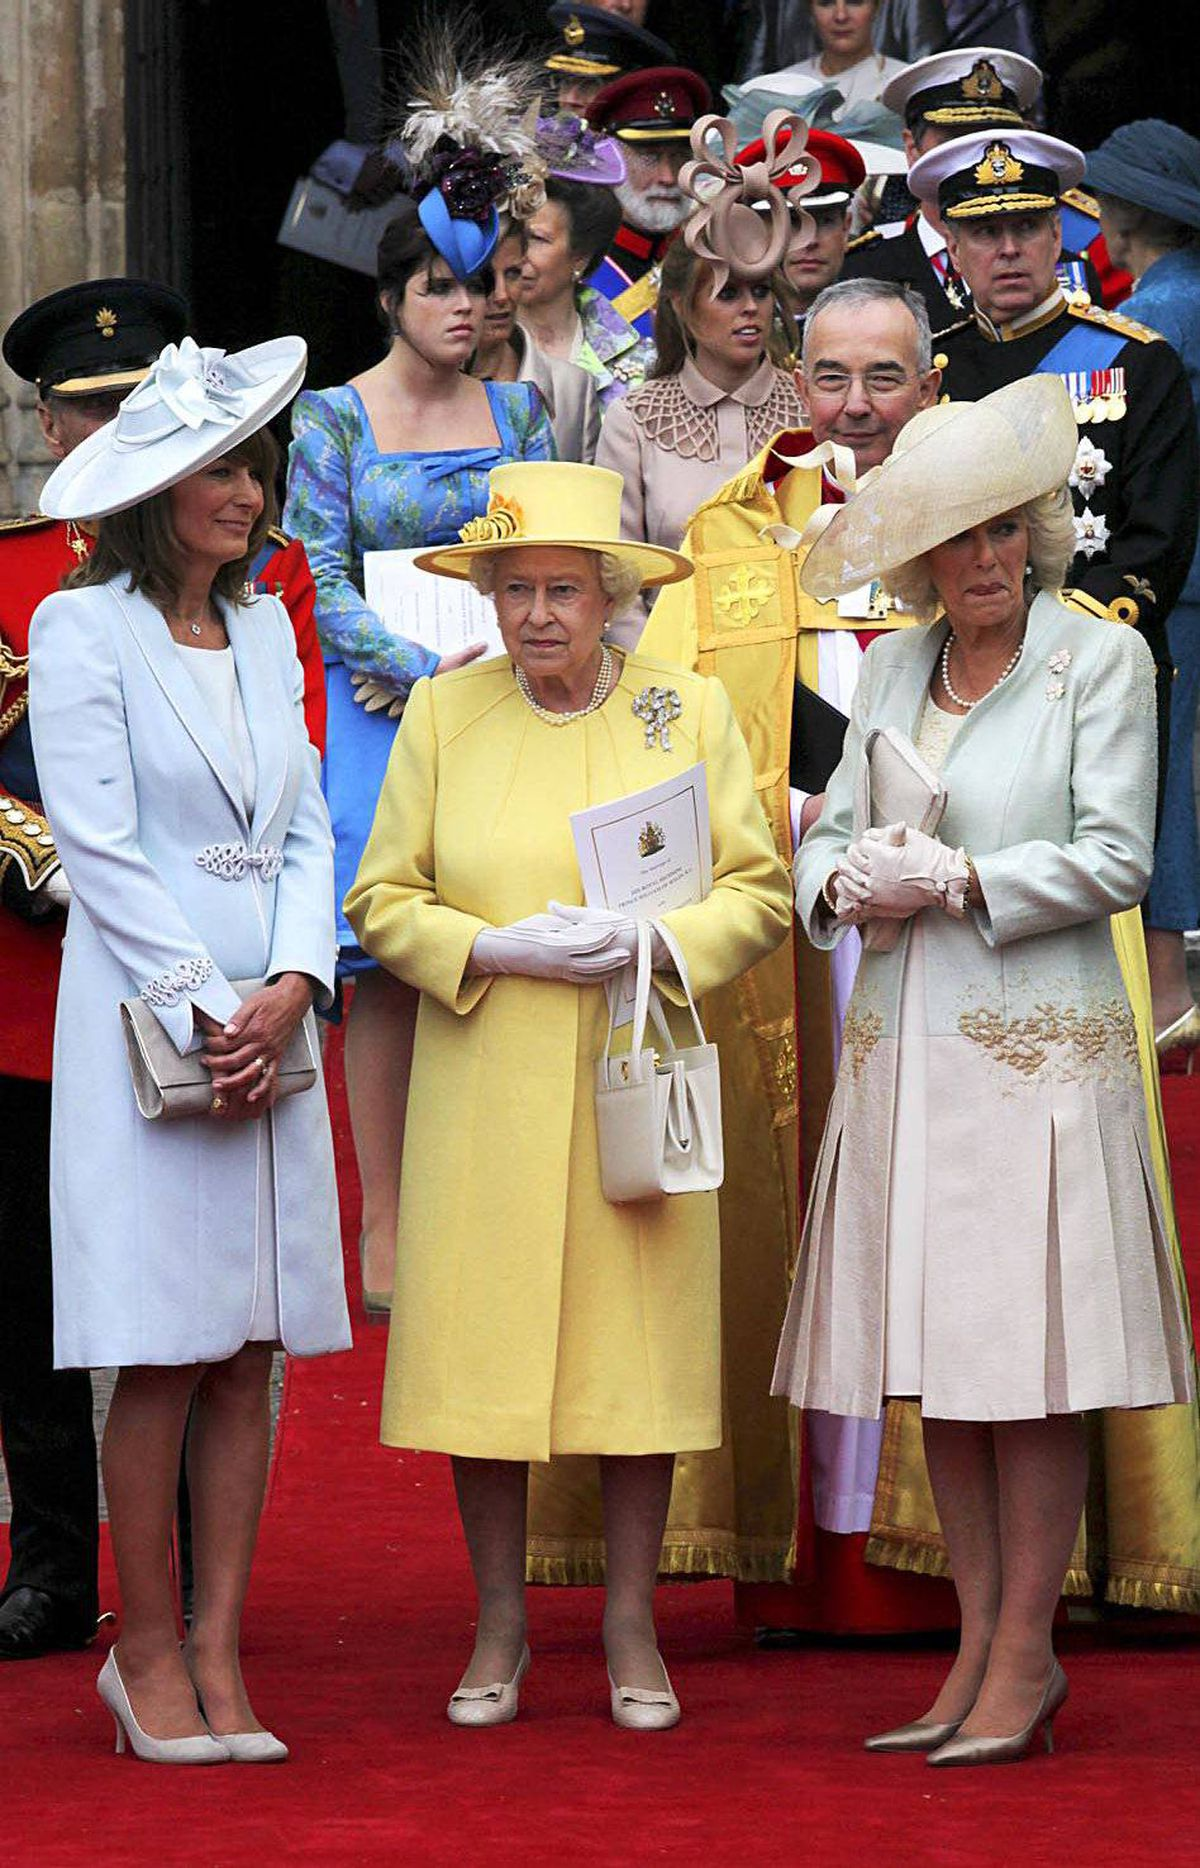 Carole Middleton, the Queen and Camilla, Duchess of Cornwall speak following the marriage of Prince William, Duke of Cambridge and Catherine, Duchess of Cambridge at Westminster Abbey on April 29, 2011 in London, England.